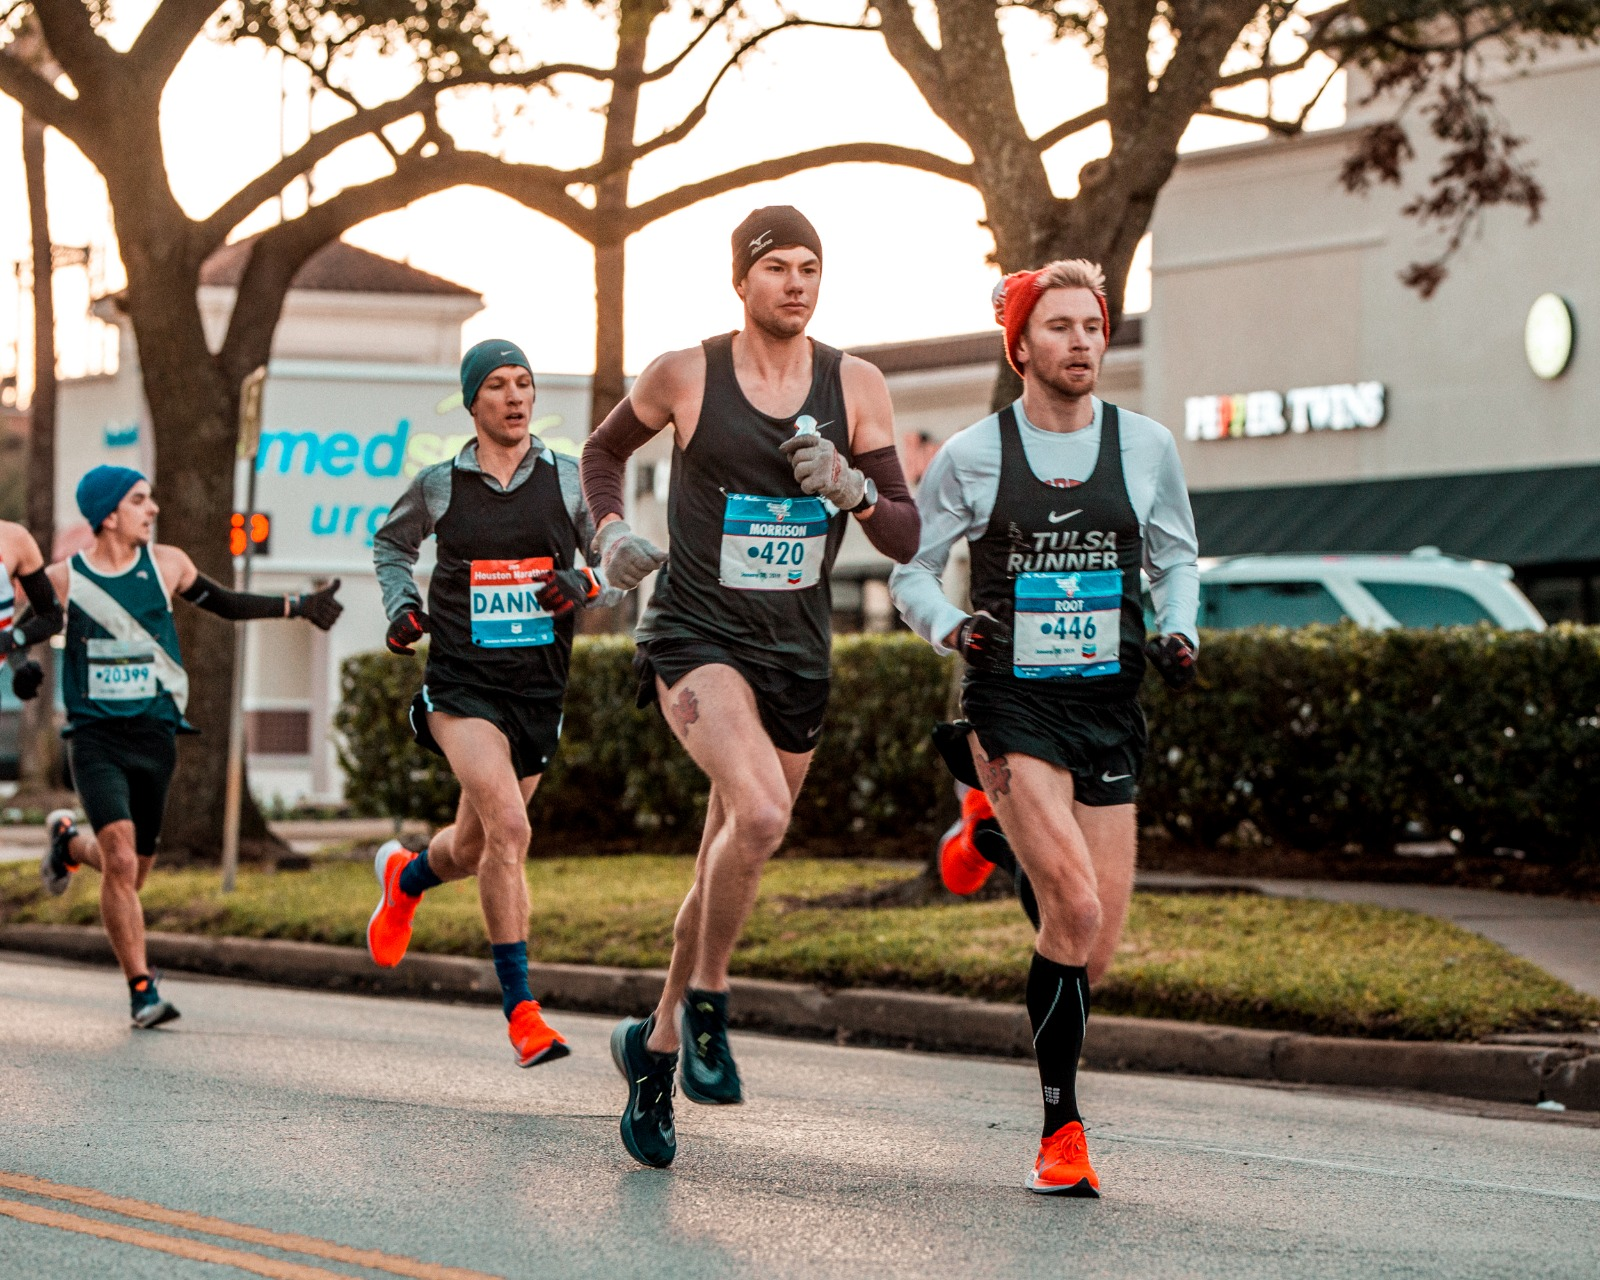 Travis and I ran together the entire way at the Houston Marathon